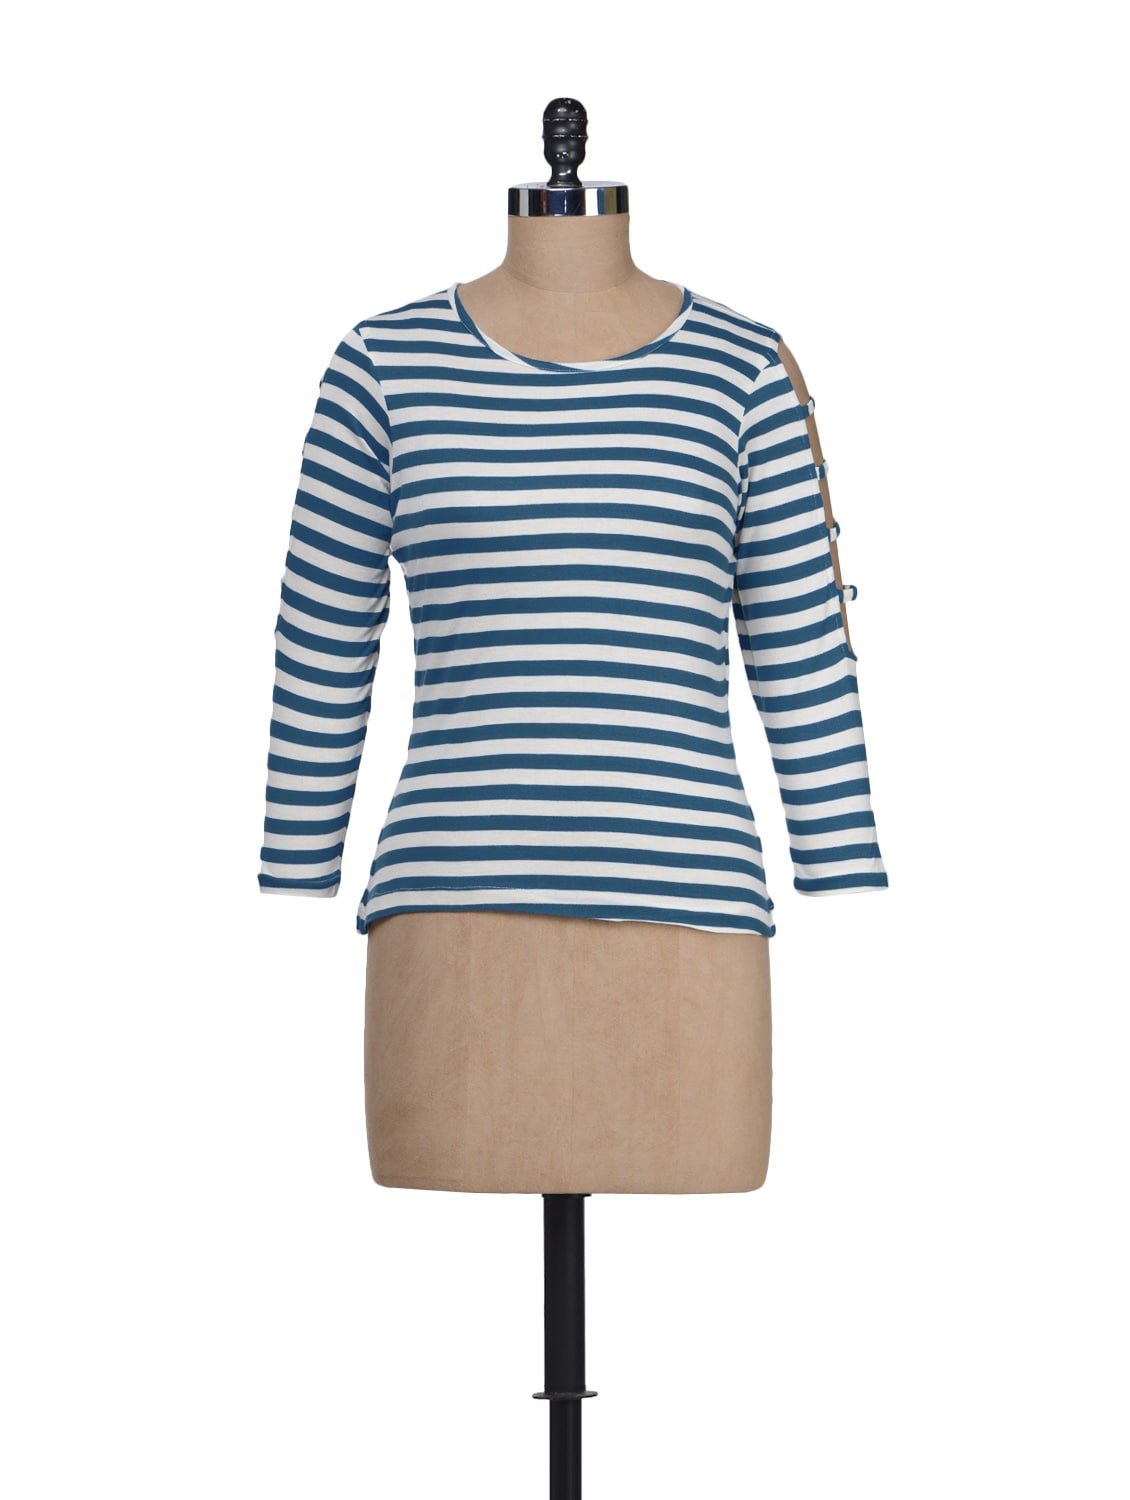 Blue & White Striped Top - Guster Ve..